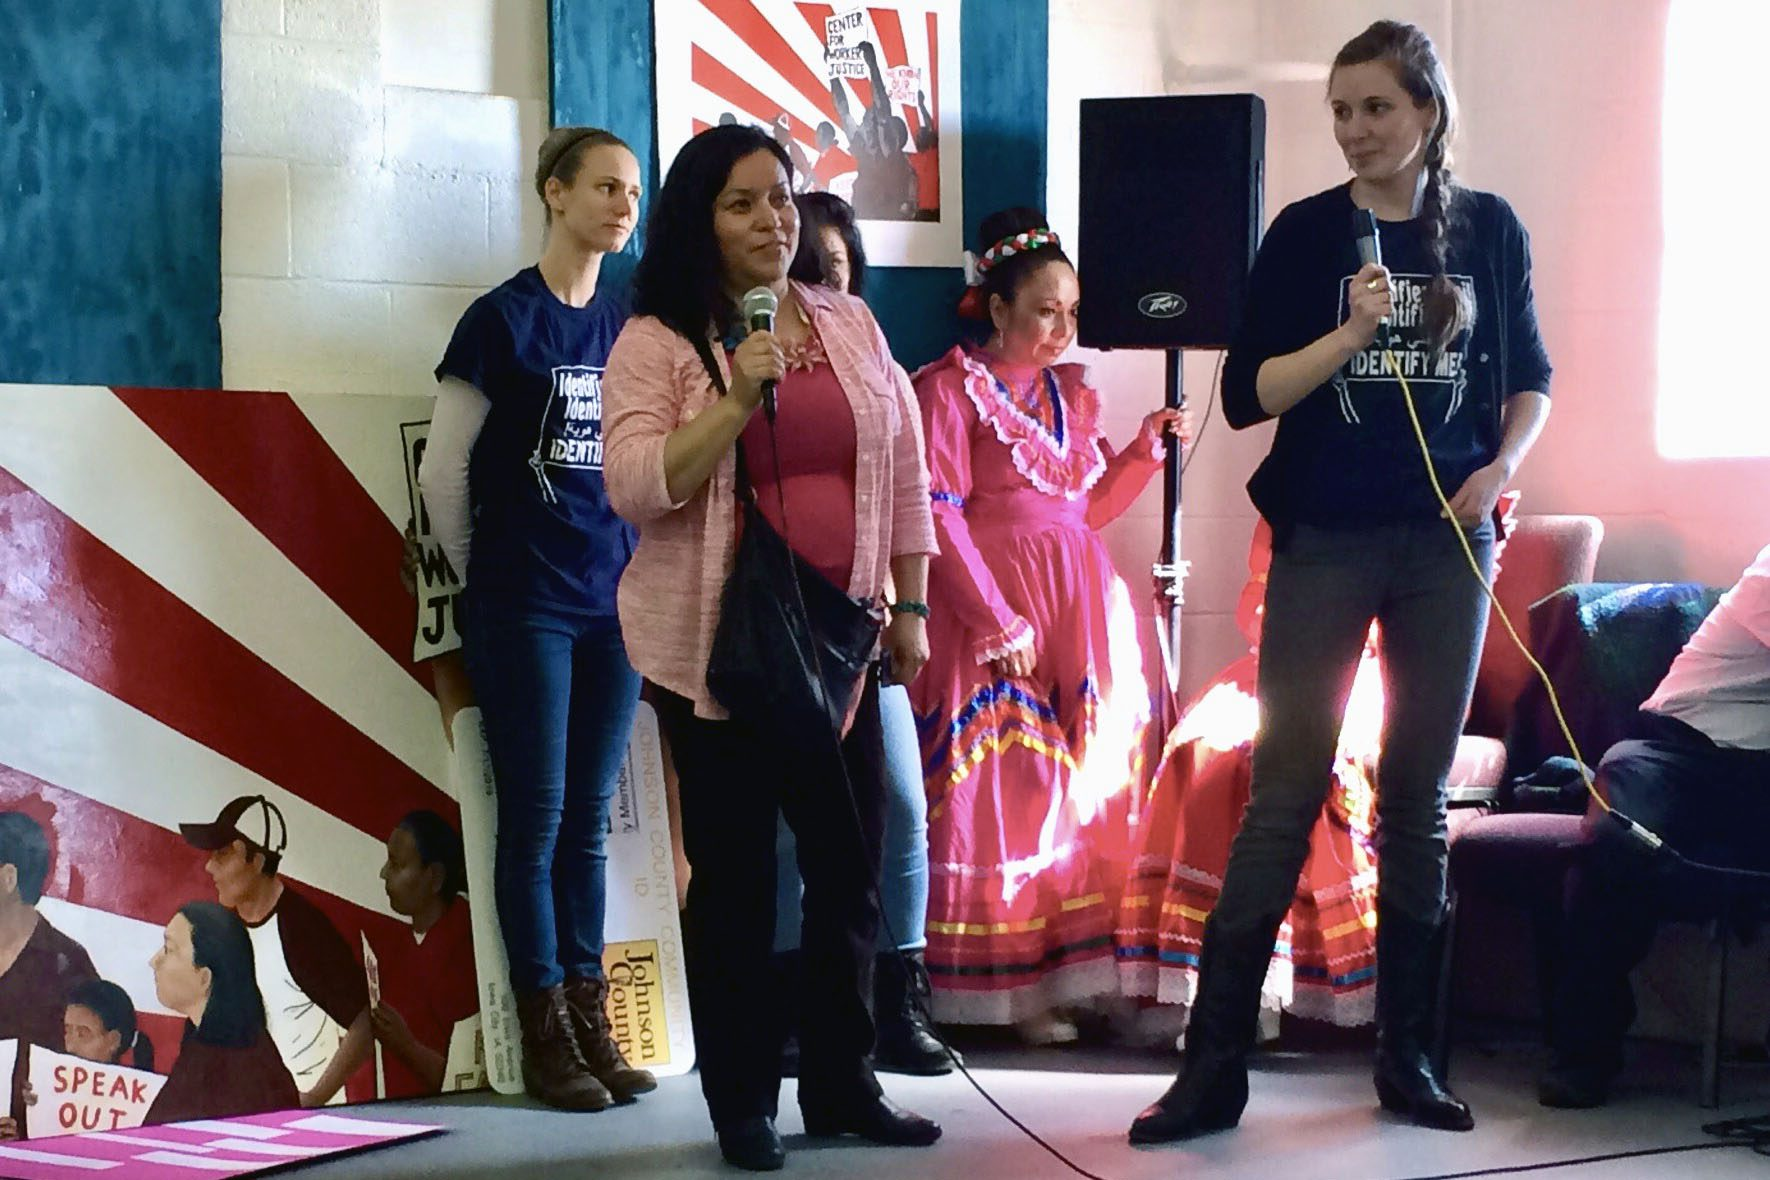 Nicole Novak (right) and a leader from the Center for Worker Justice of Eastern Iowa speak on a stage with microphones in front of three other women and protest art.